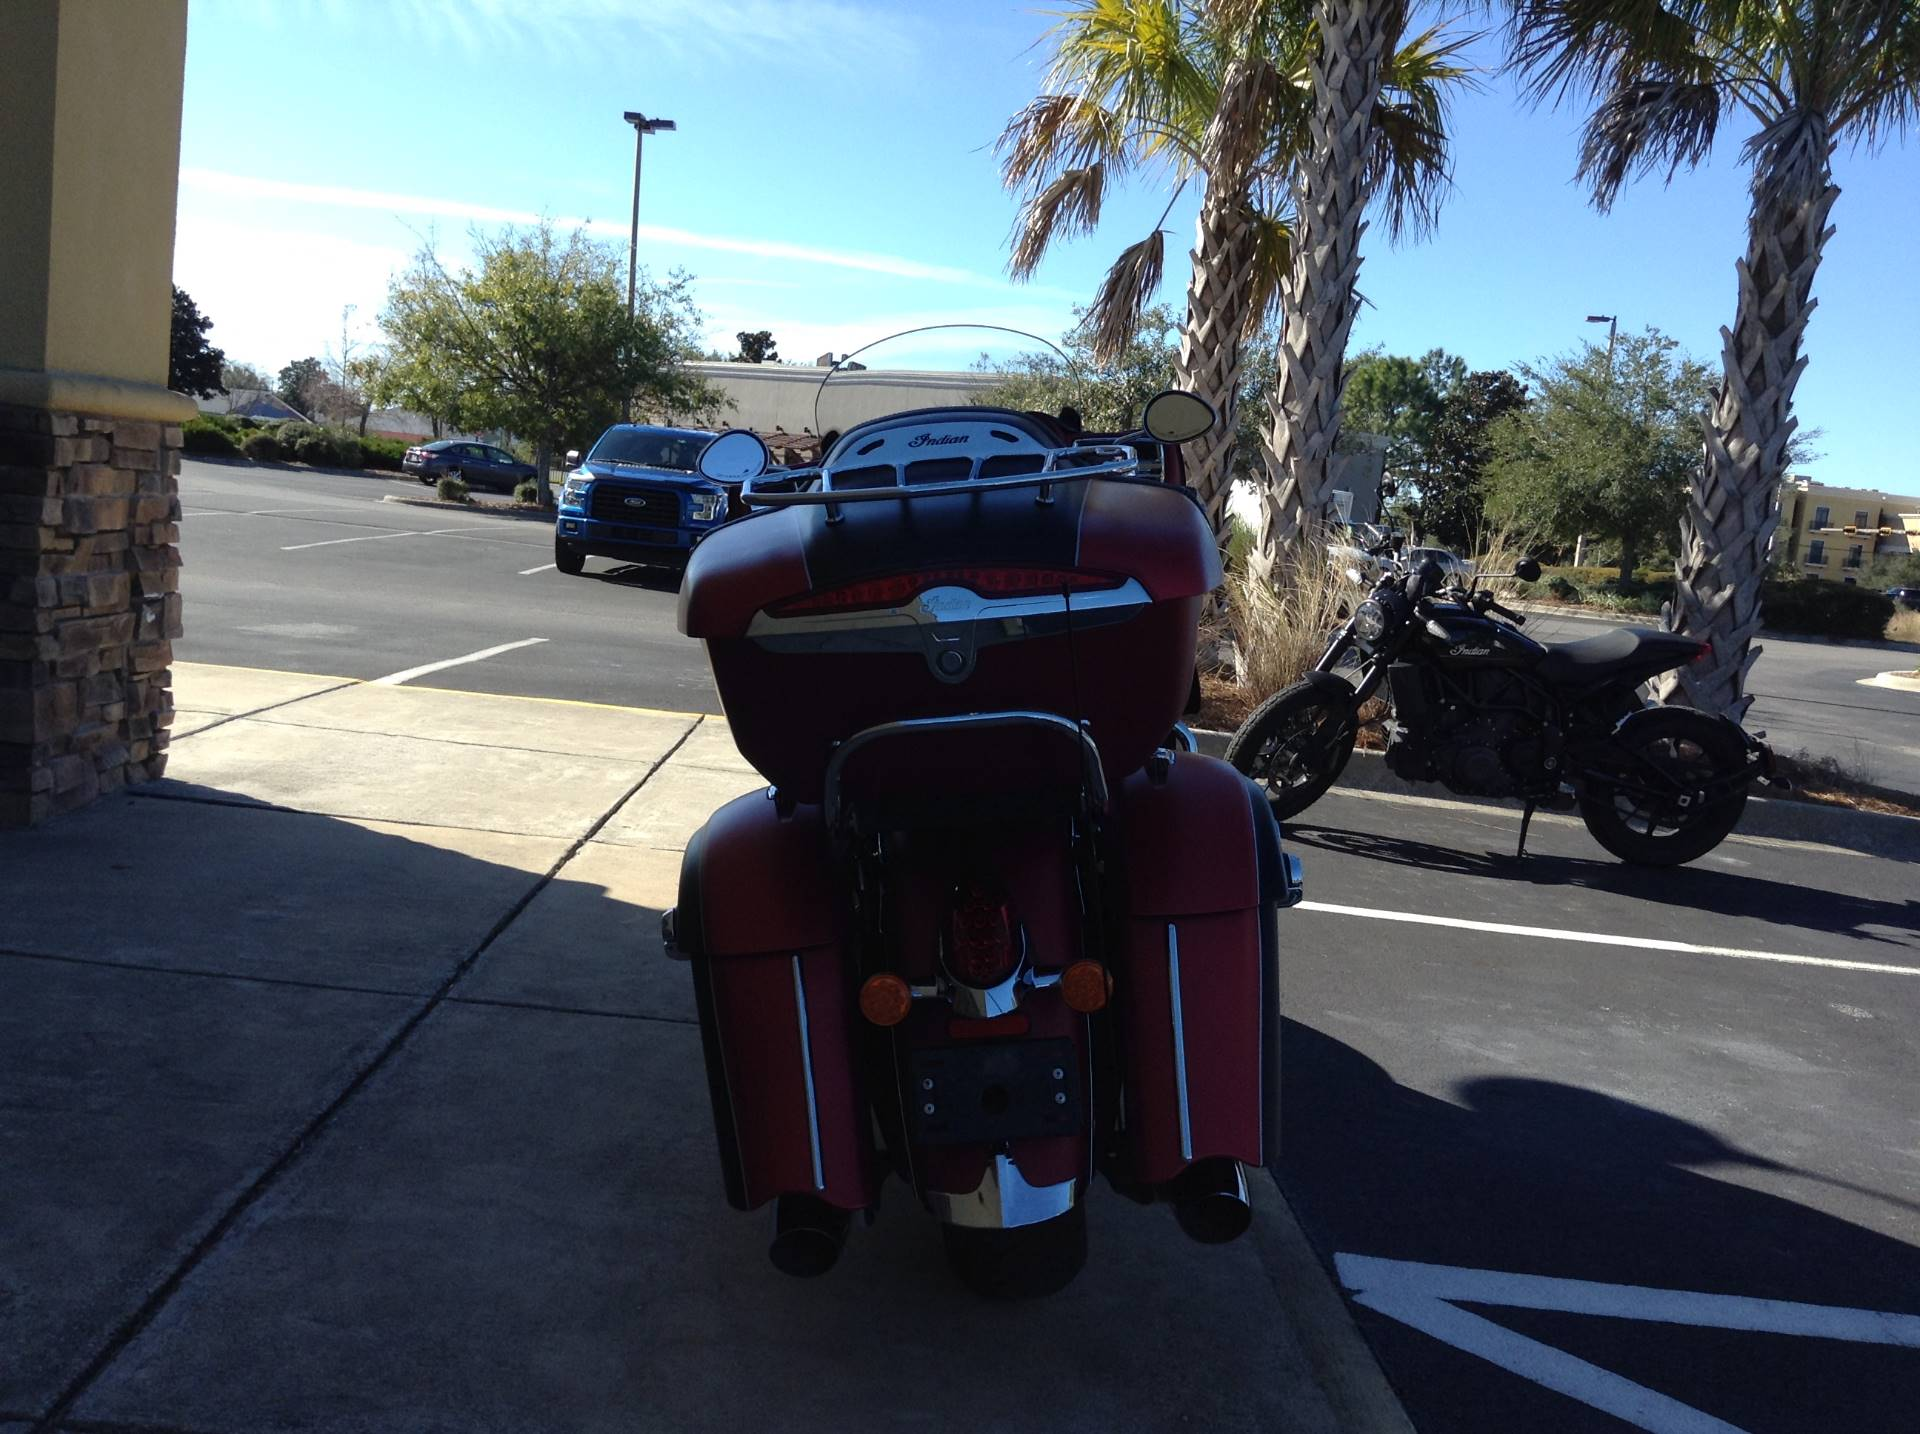 2019 Indian ROAD MASTER ICON in Panama City Beach, Florida - Photo 7